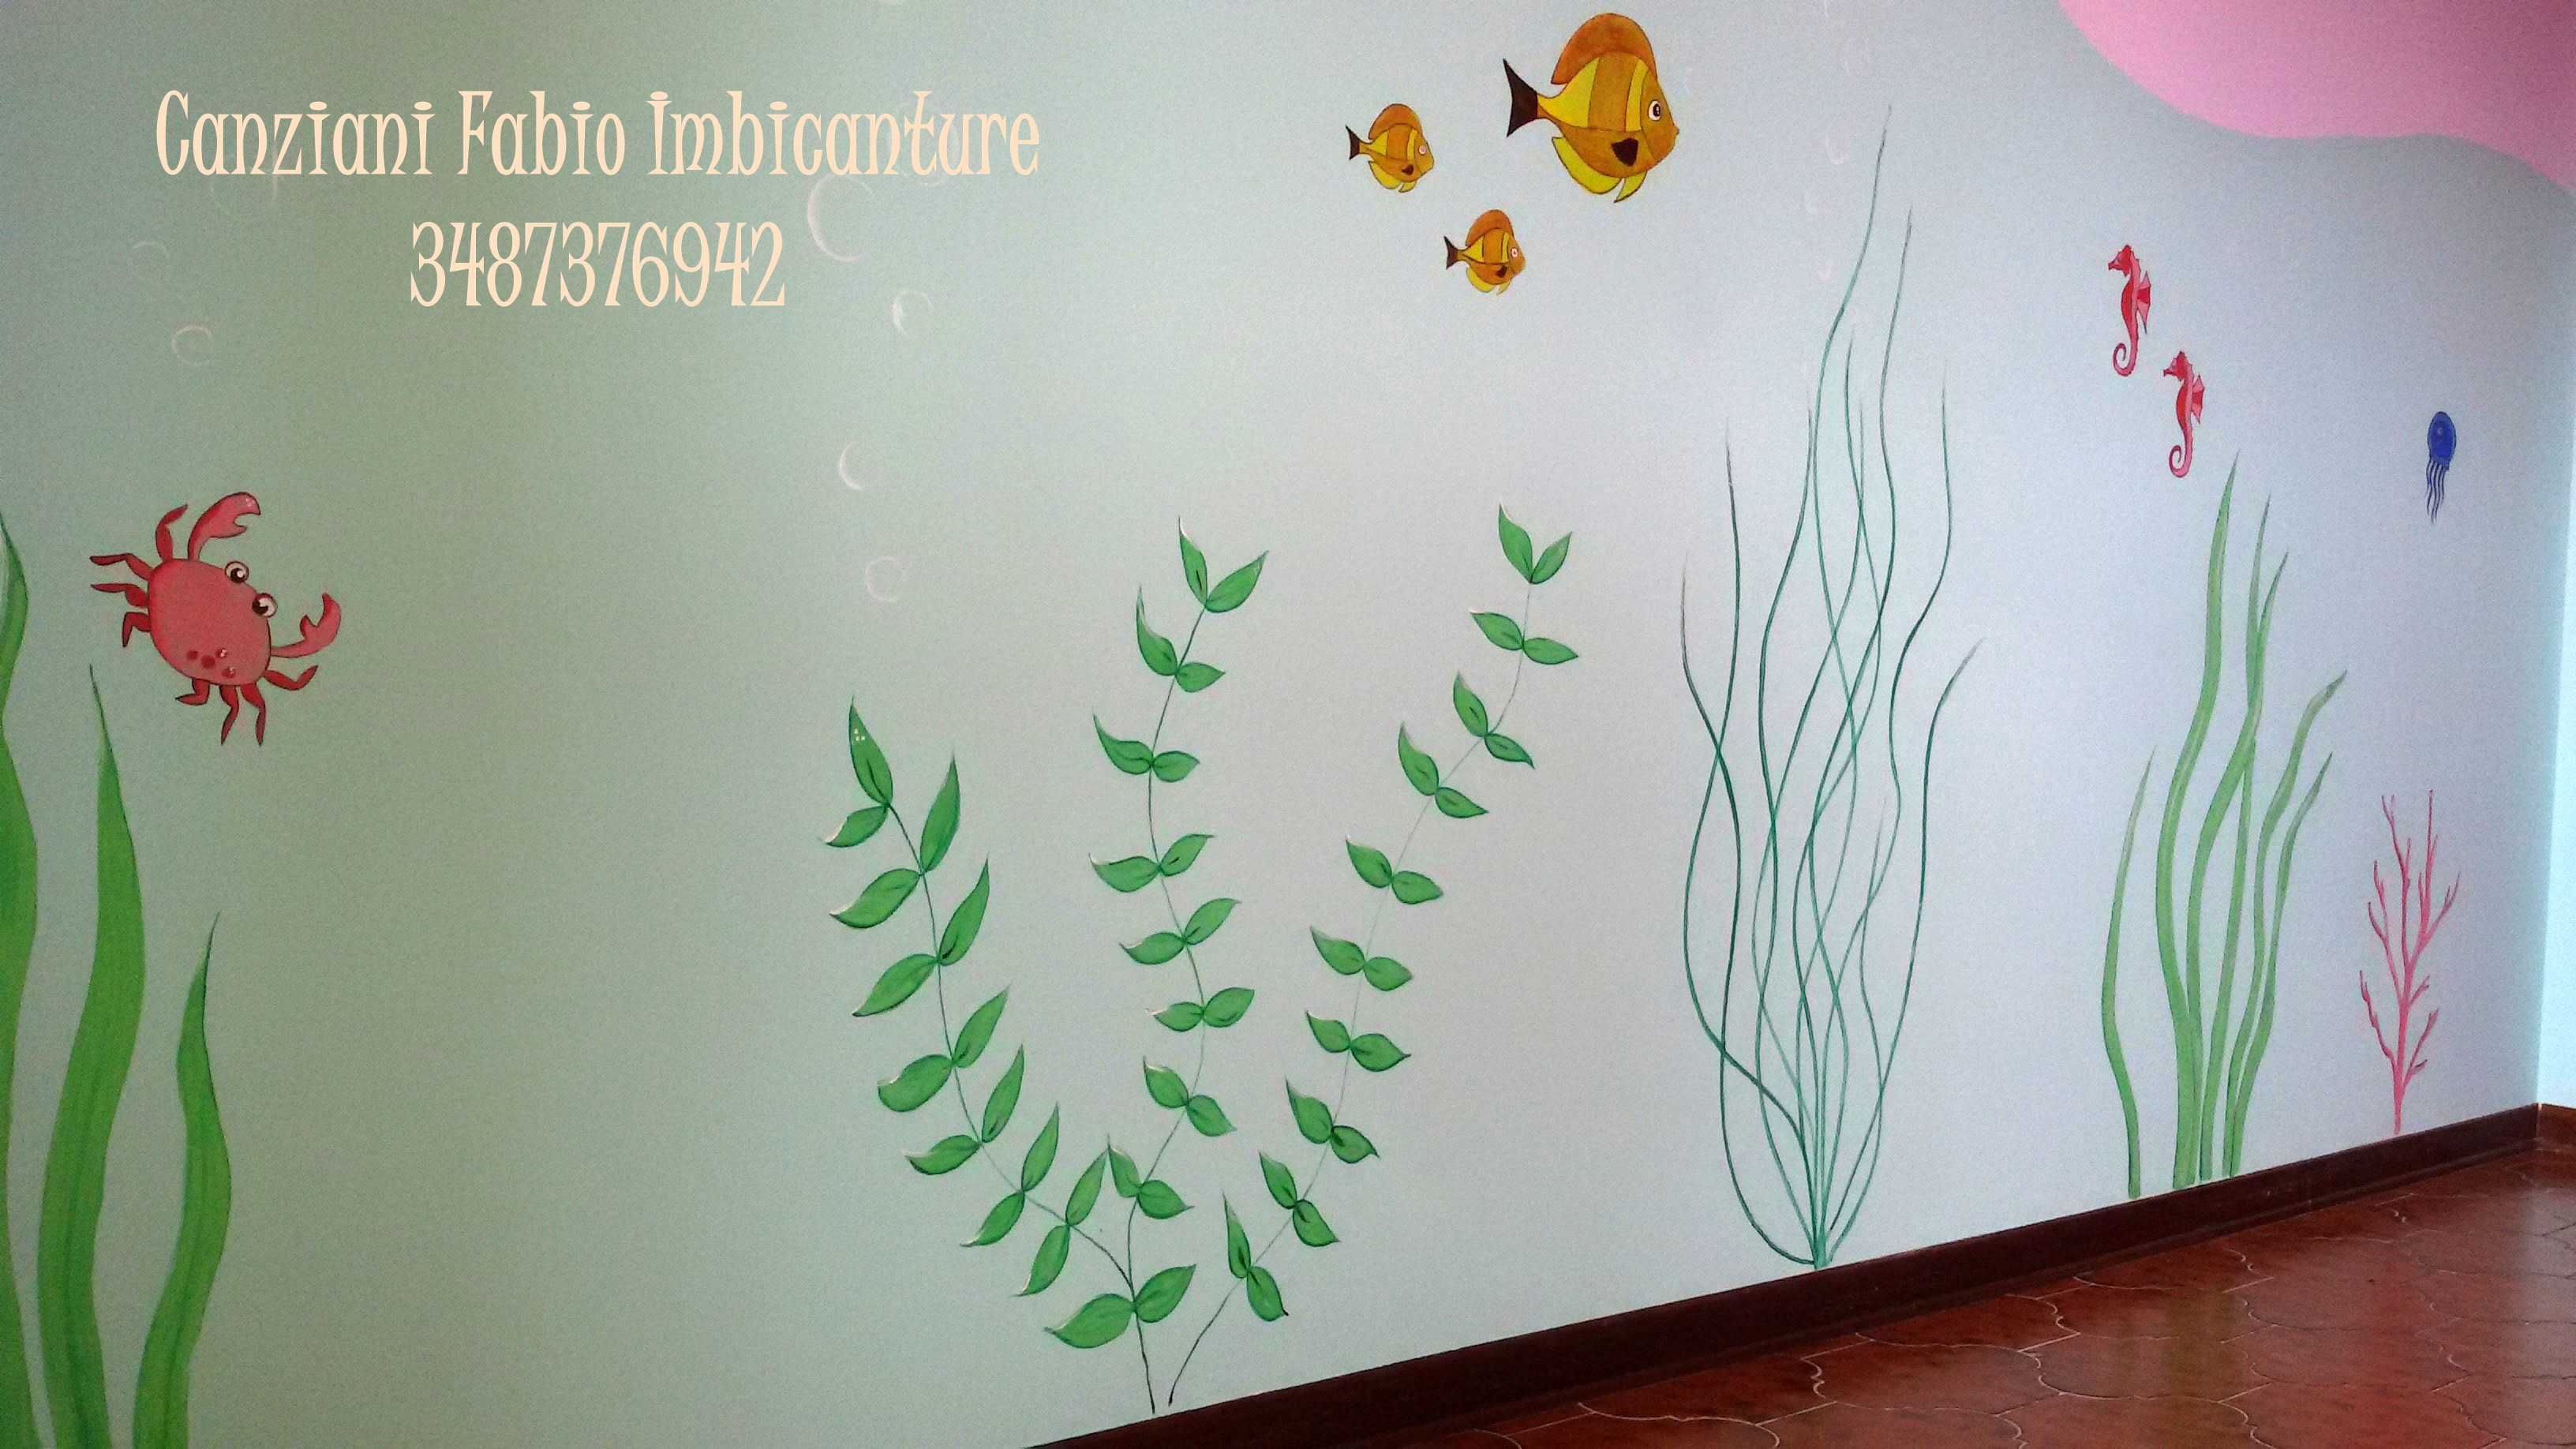 Decorazioni murali canziani fabio imbiancature novara for Decorazione be u